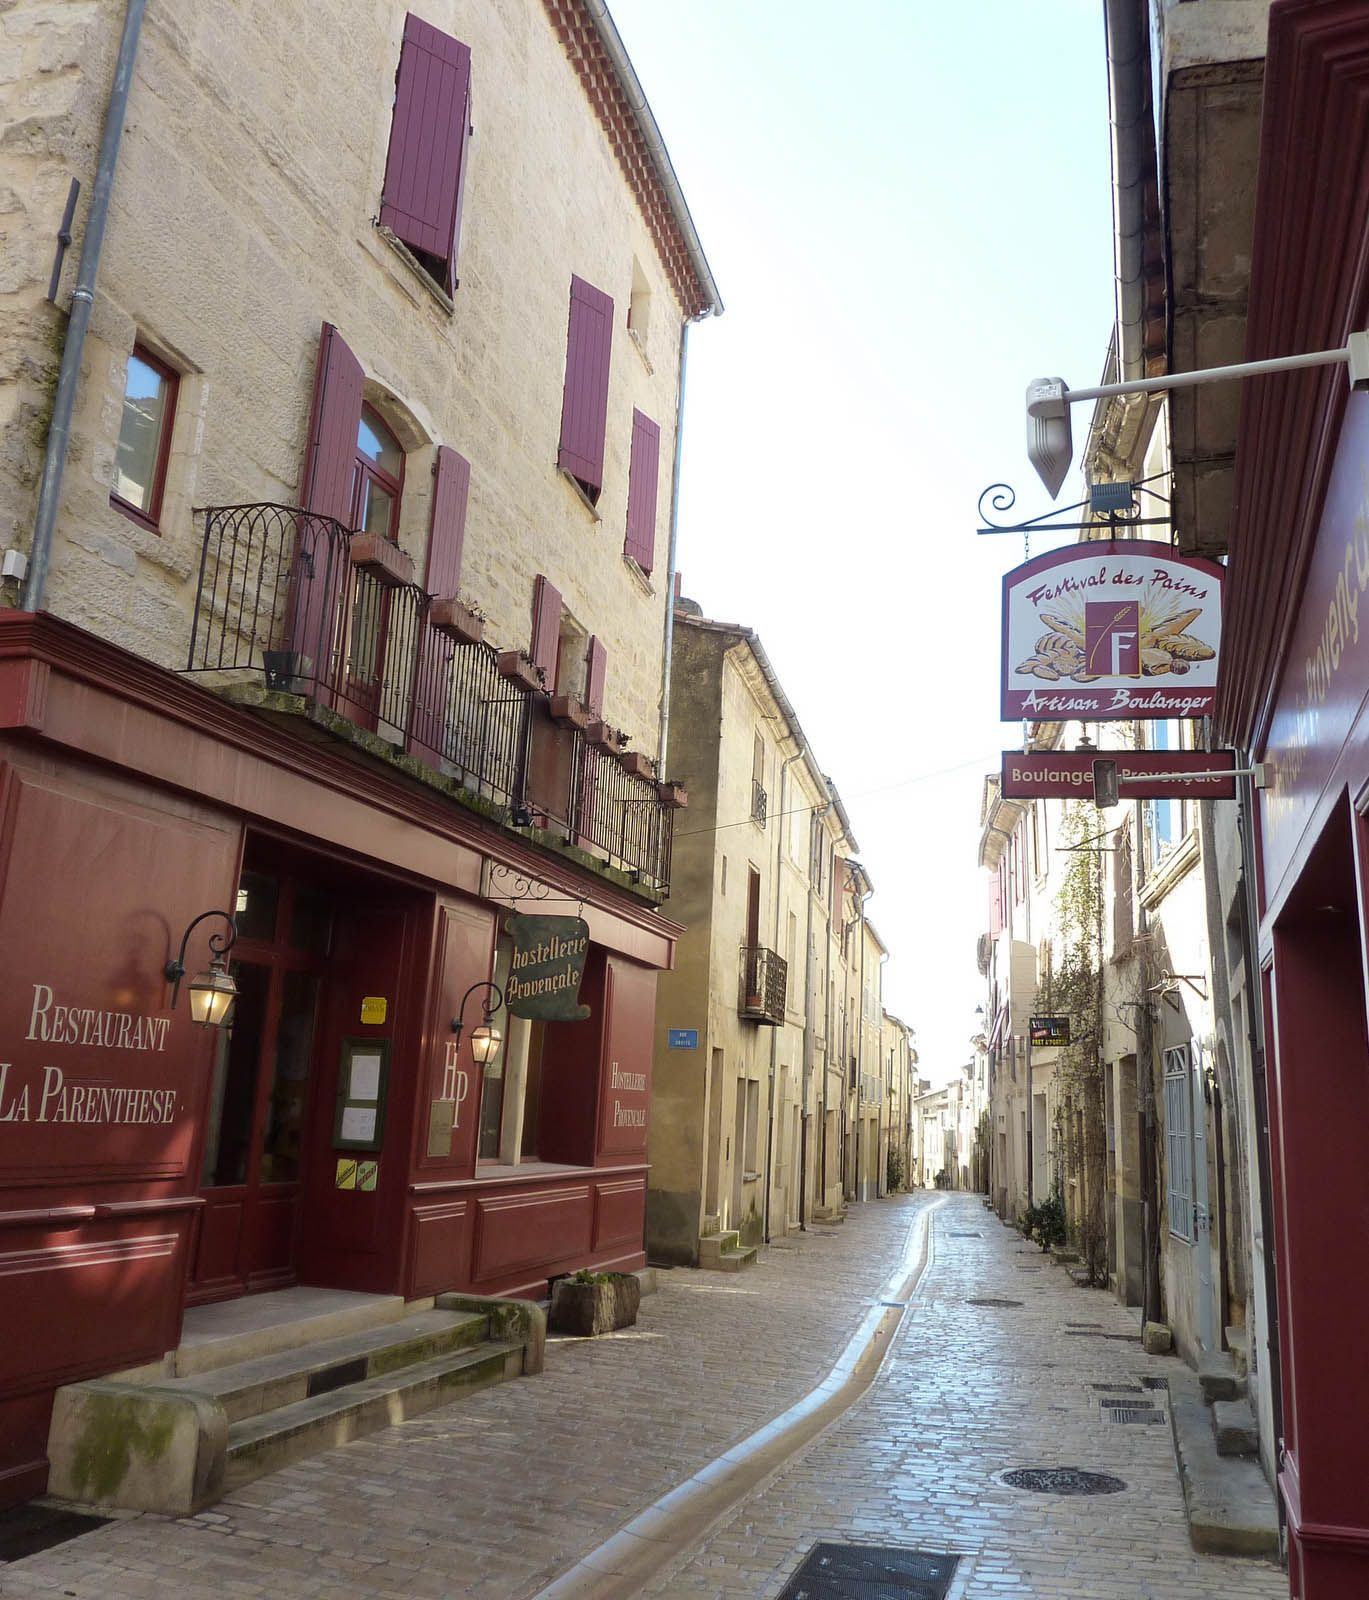 French Cottages chooses the best locations in France including this lovely pedestiranised street in Uzès, Provence where we have two apartments for holiday rental